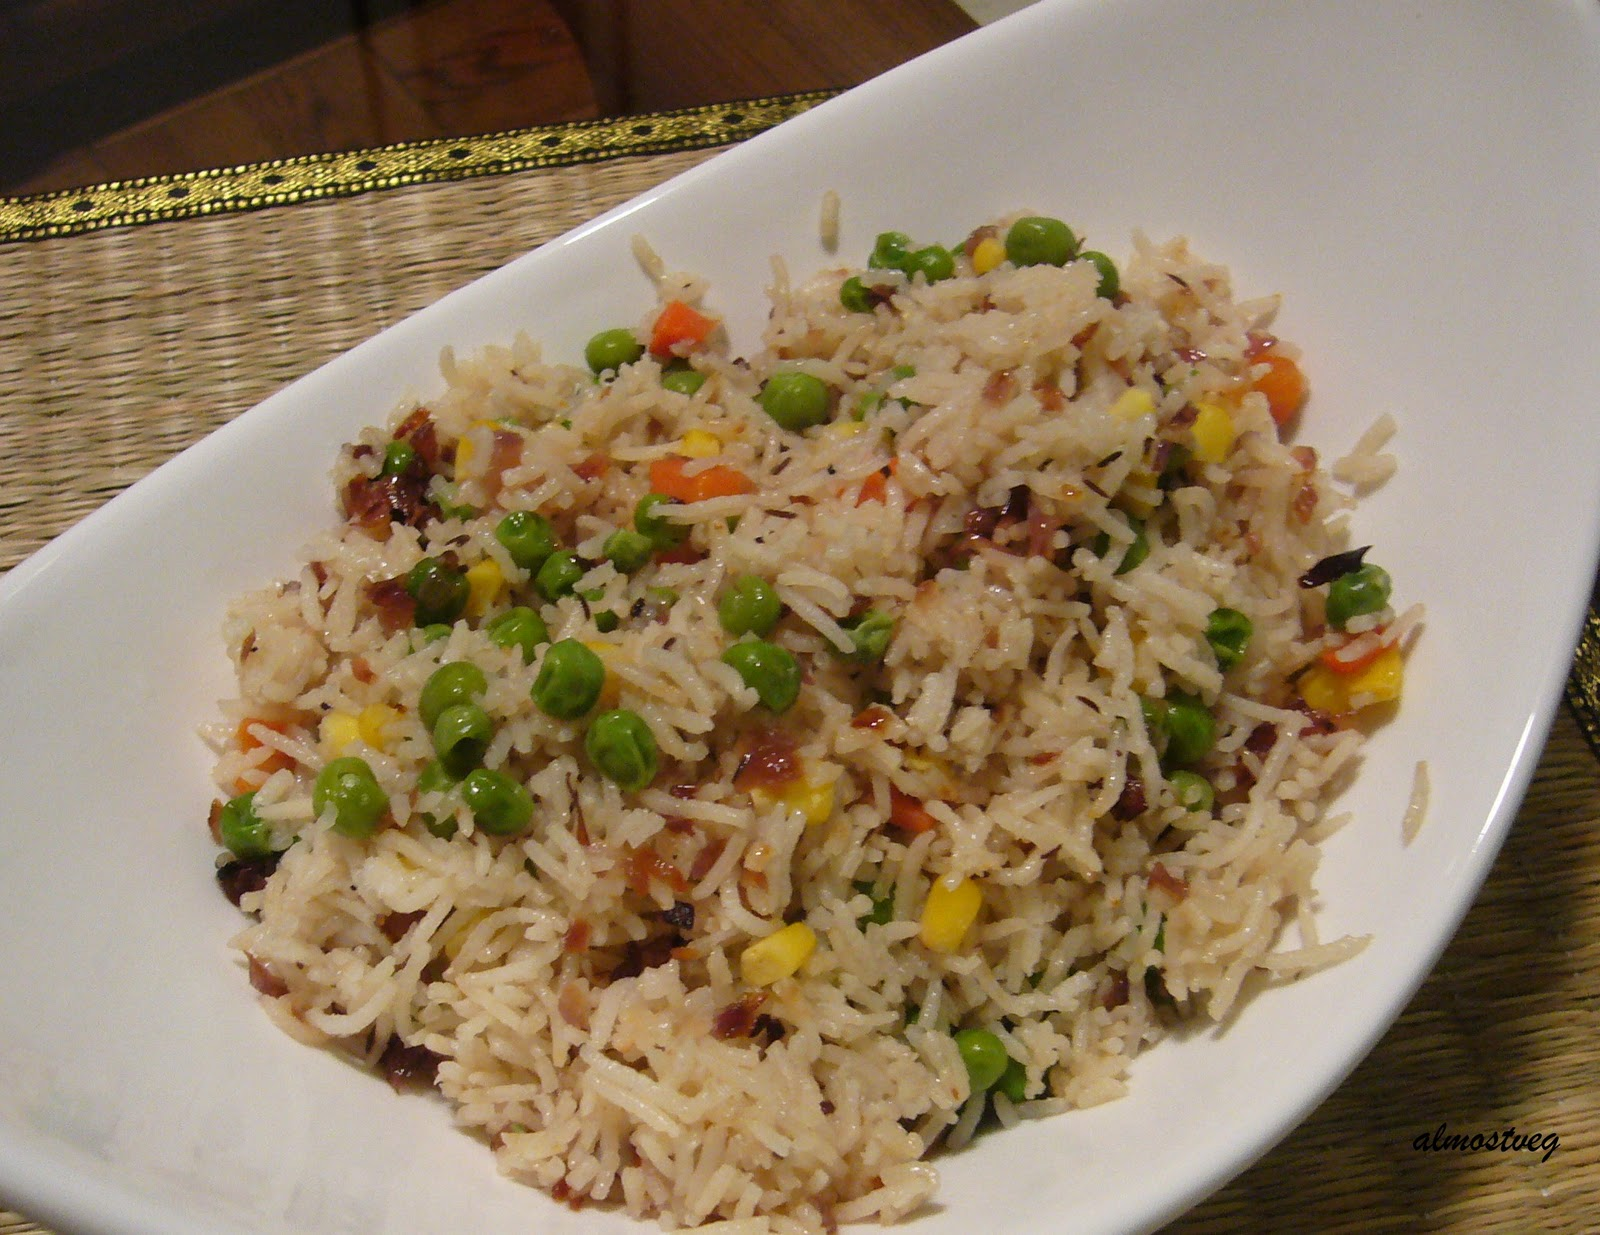 almostveg: Mixed vegetable pilaf with Shahjeera